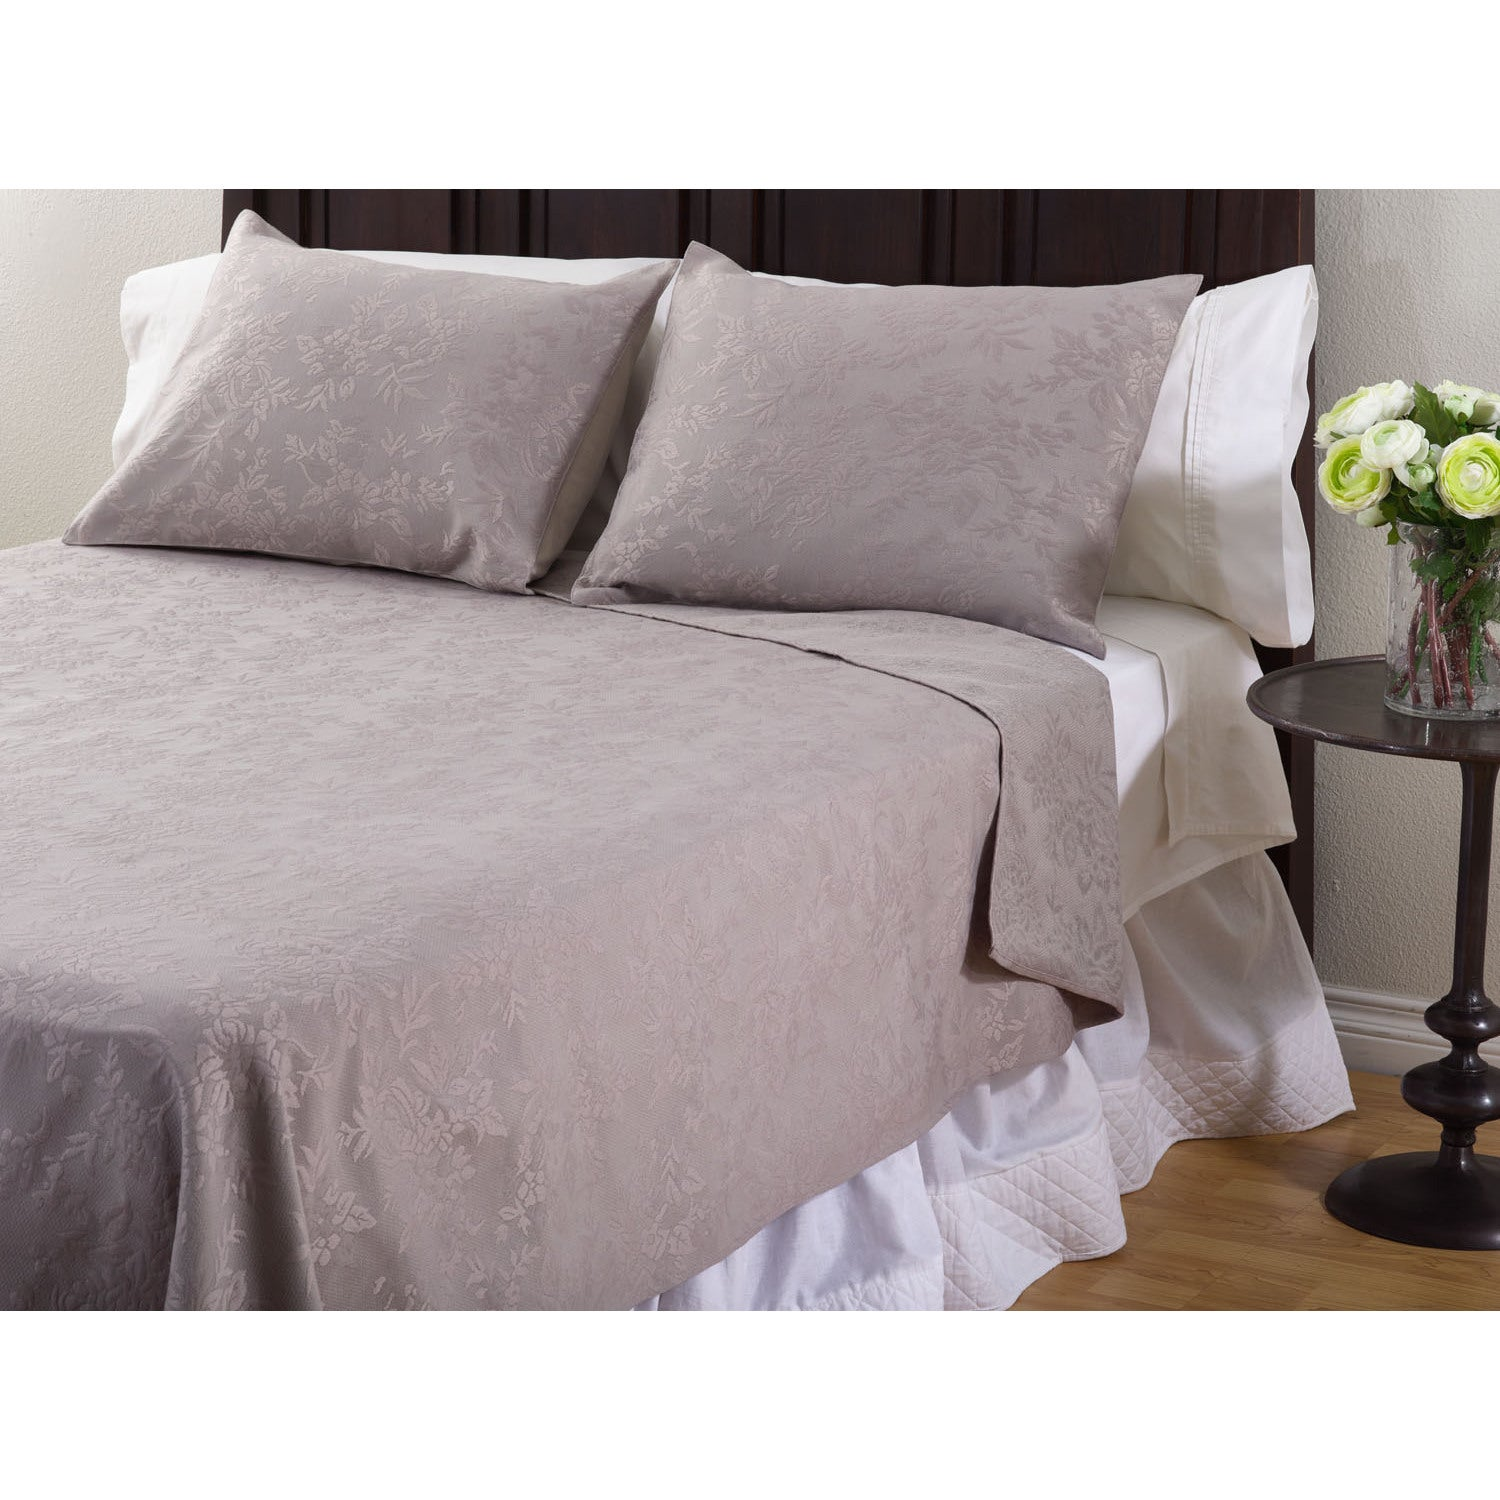 king bedspread duvet white twin matelasse cover diamond bedding queen coverlet size bed